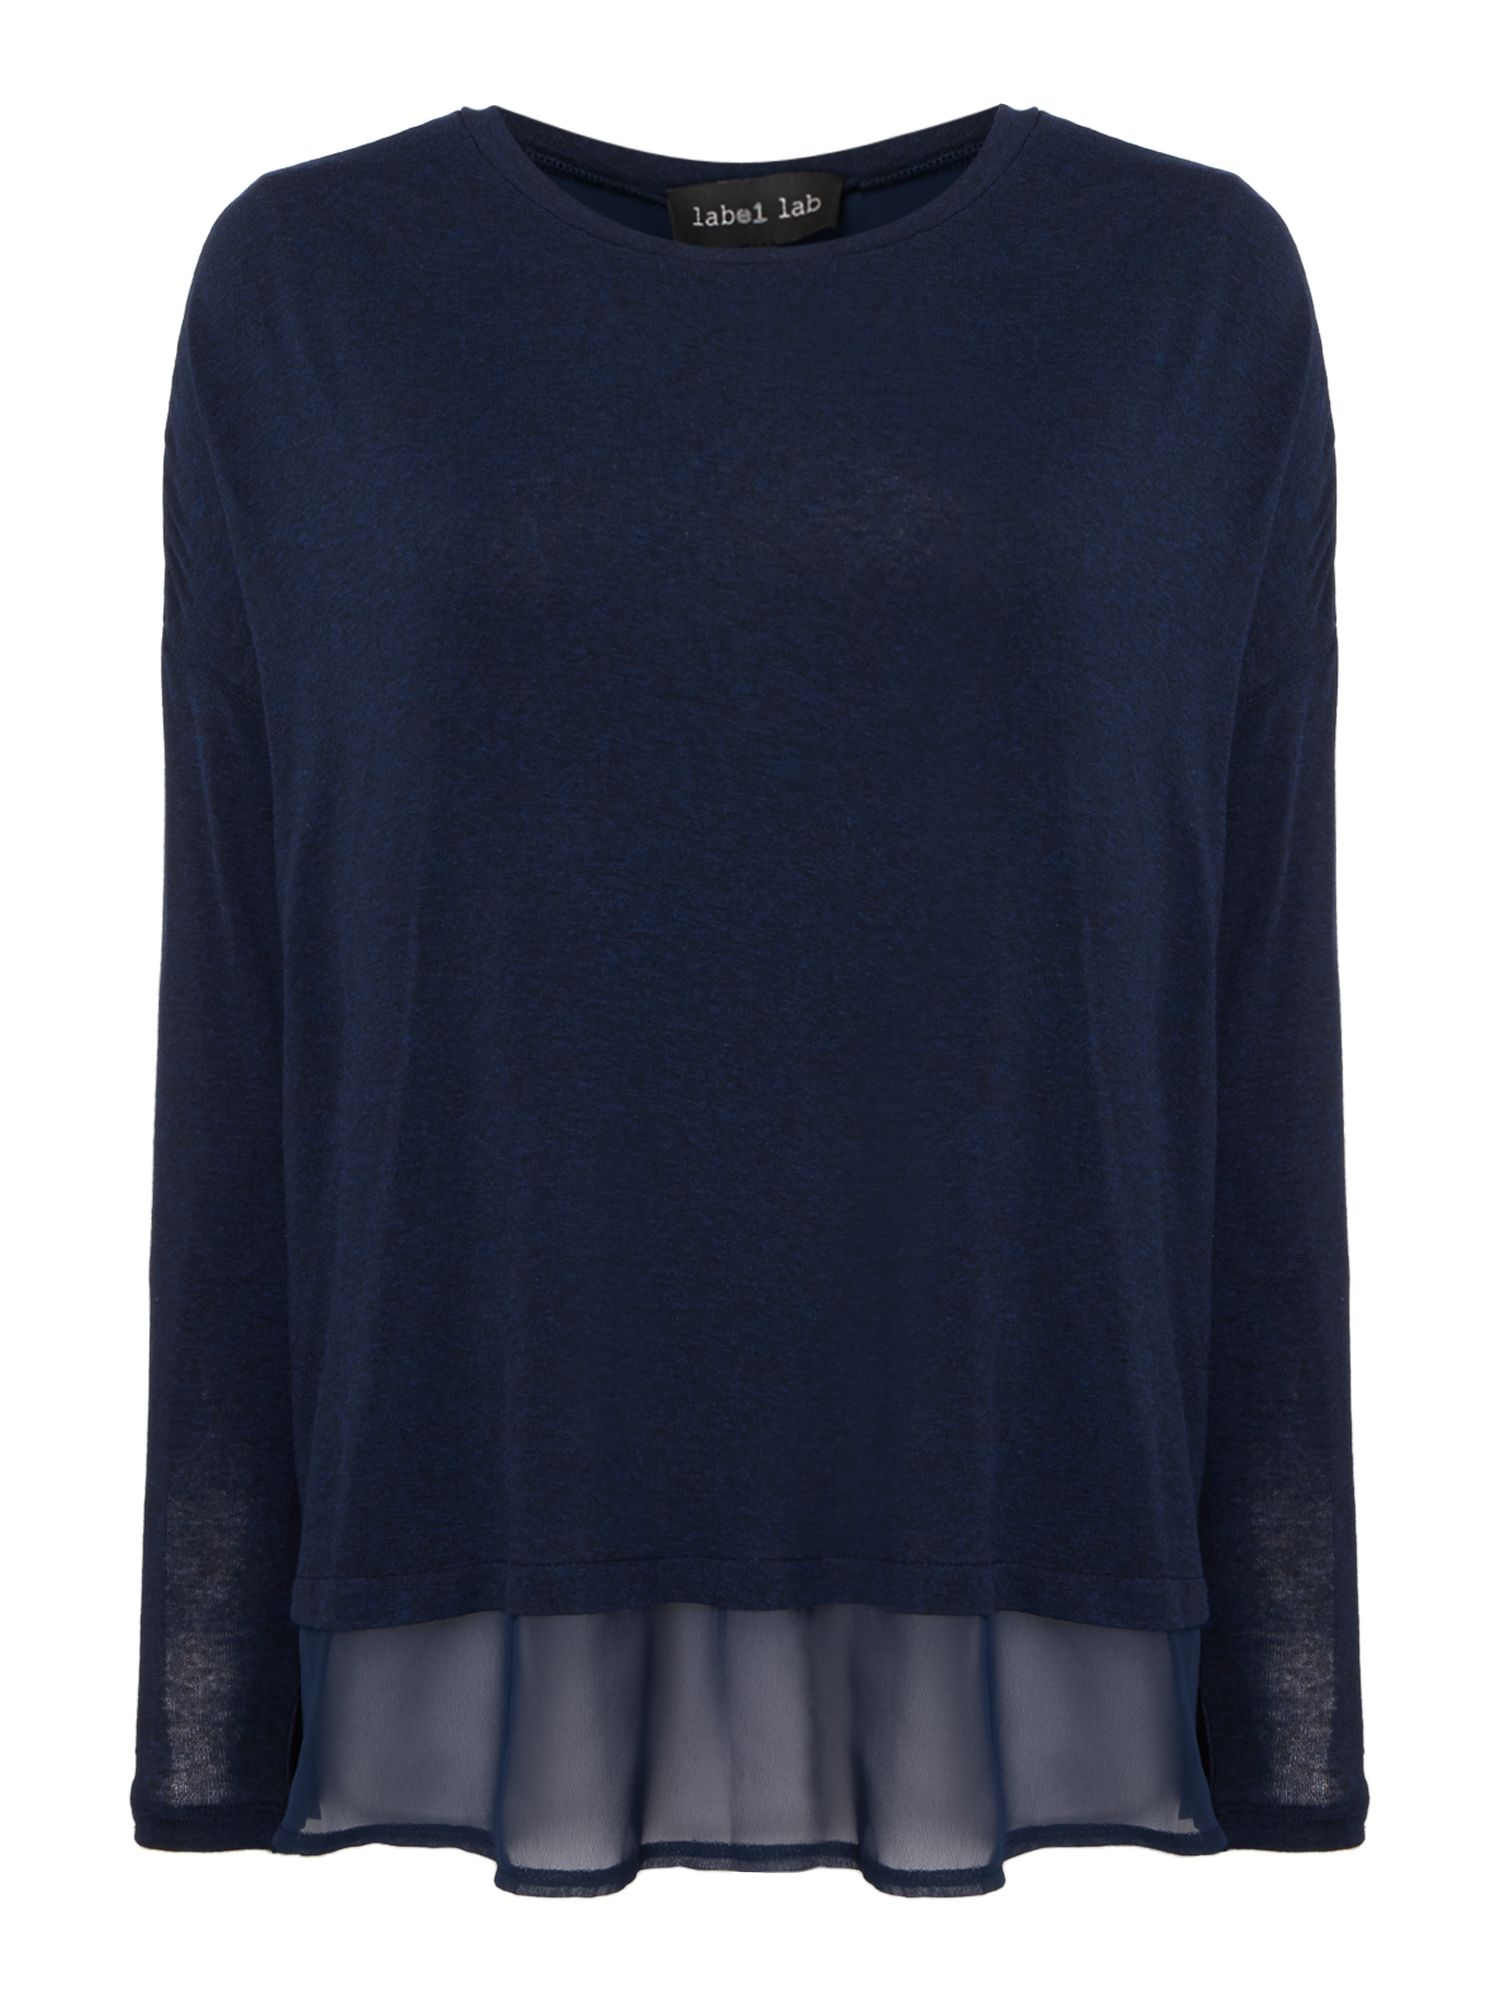 Label Lab Twist Back Knit & Chiffon layer top, Blue.